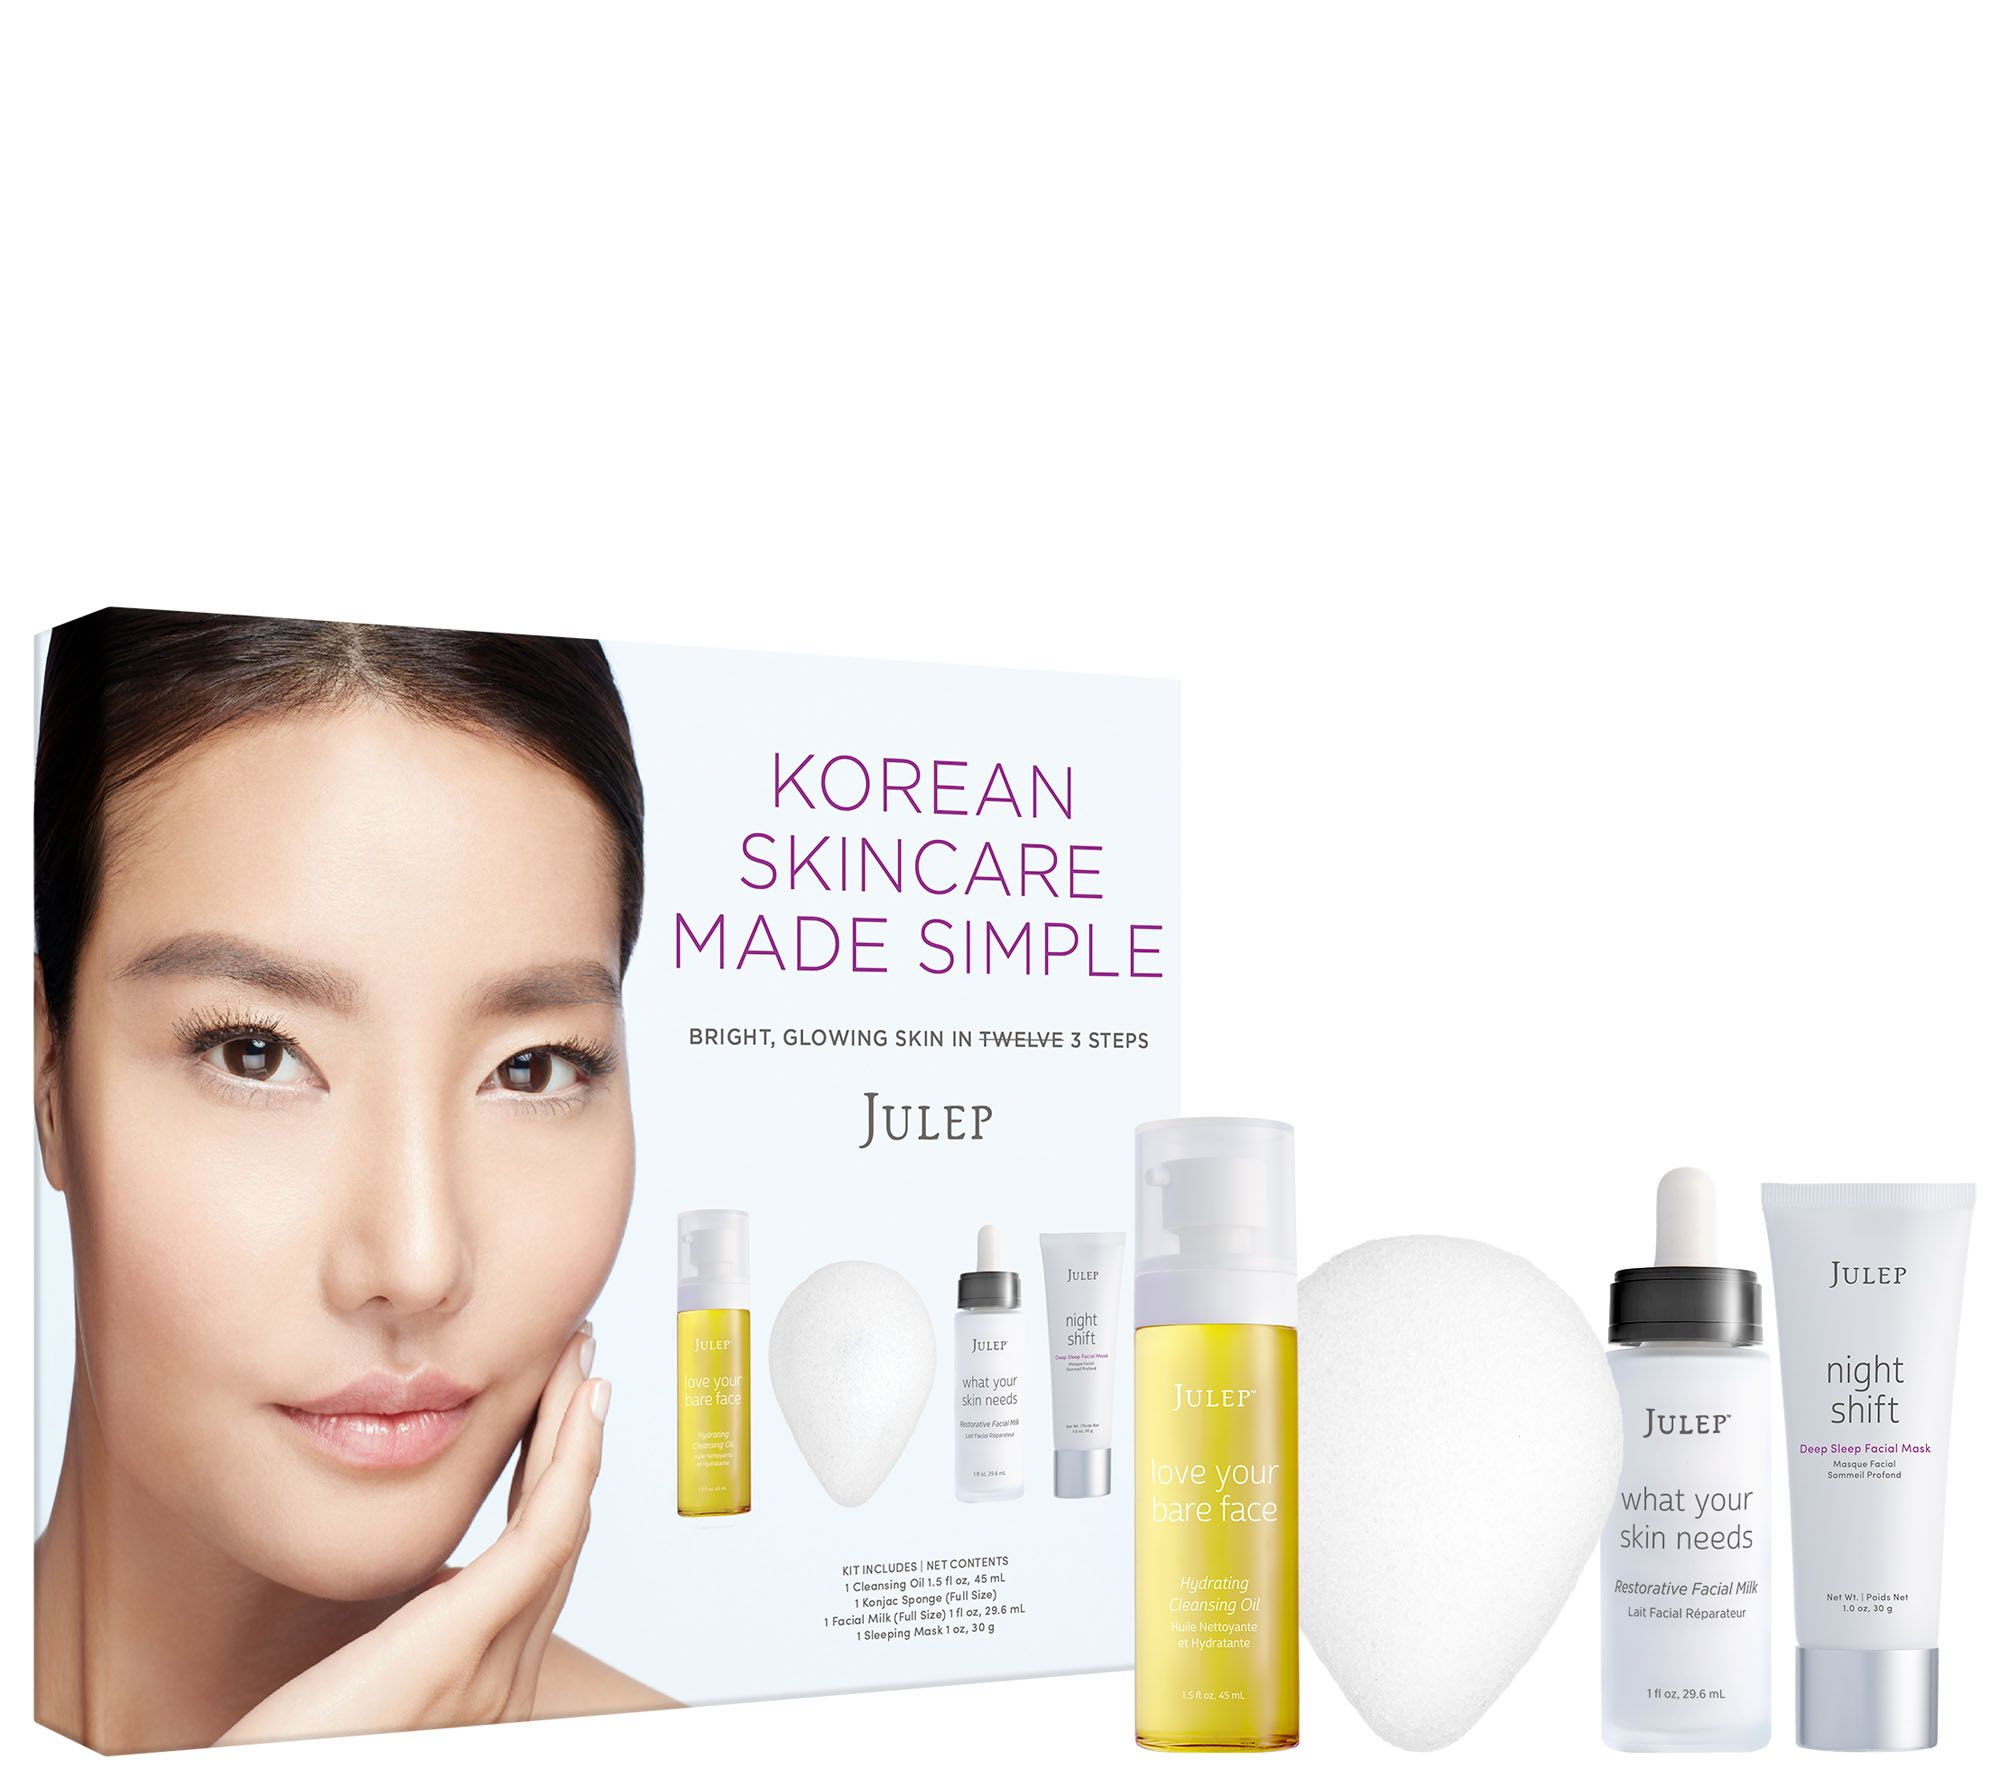 Julep Korean Skincare Made Simple Starter Set Cold Brew Face Sheet Mask - 1 Count Limited Edition by The Creme Shop (pack of 3)